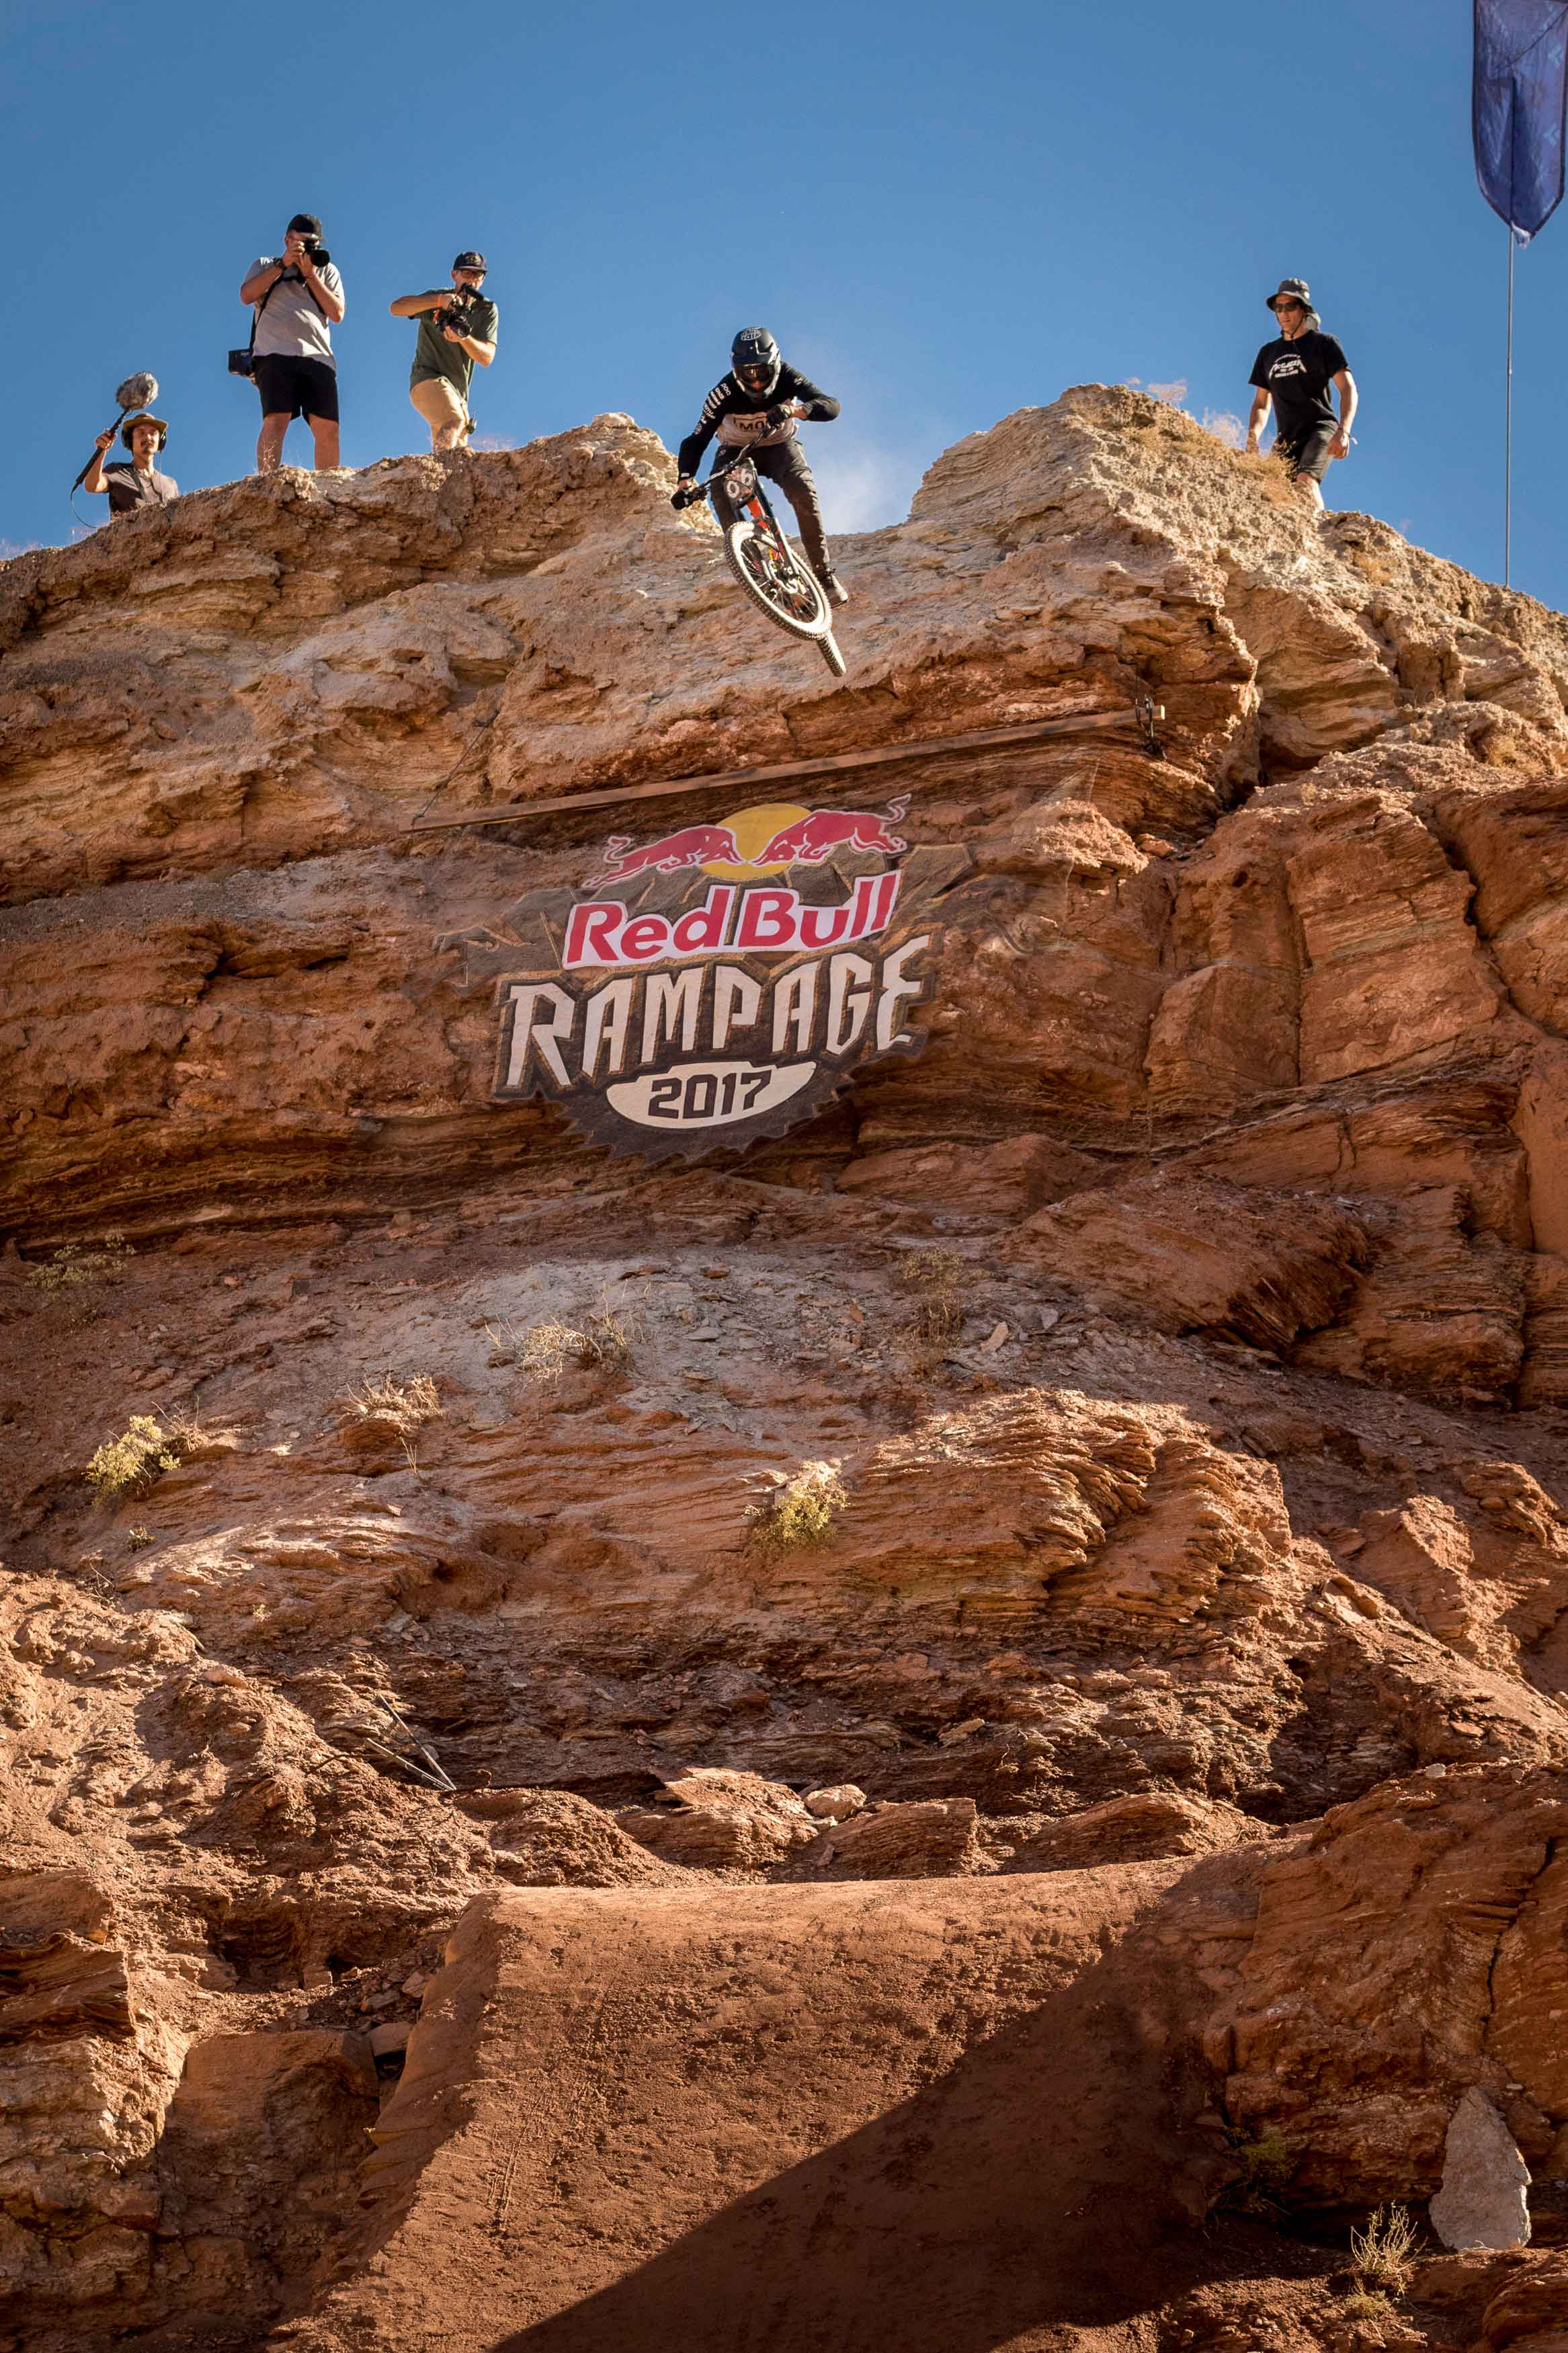 Red Bull Rampage >> This Is Red Bull Rampage 2017 In Pictures The Loam Wolf